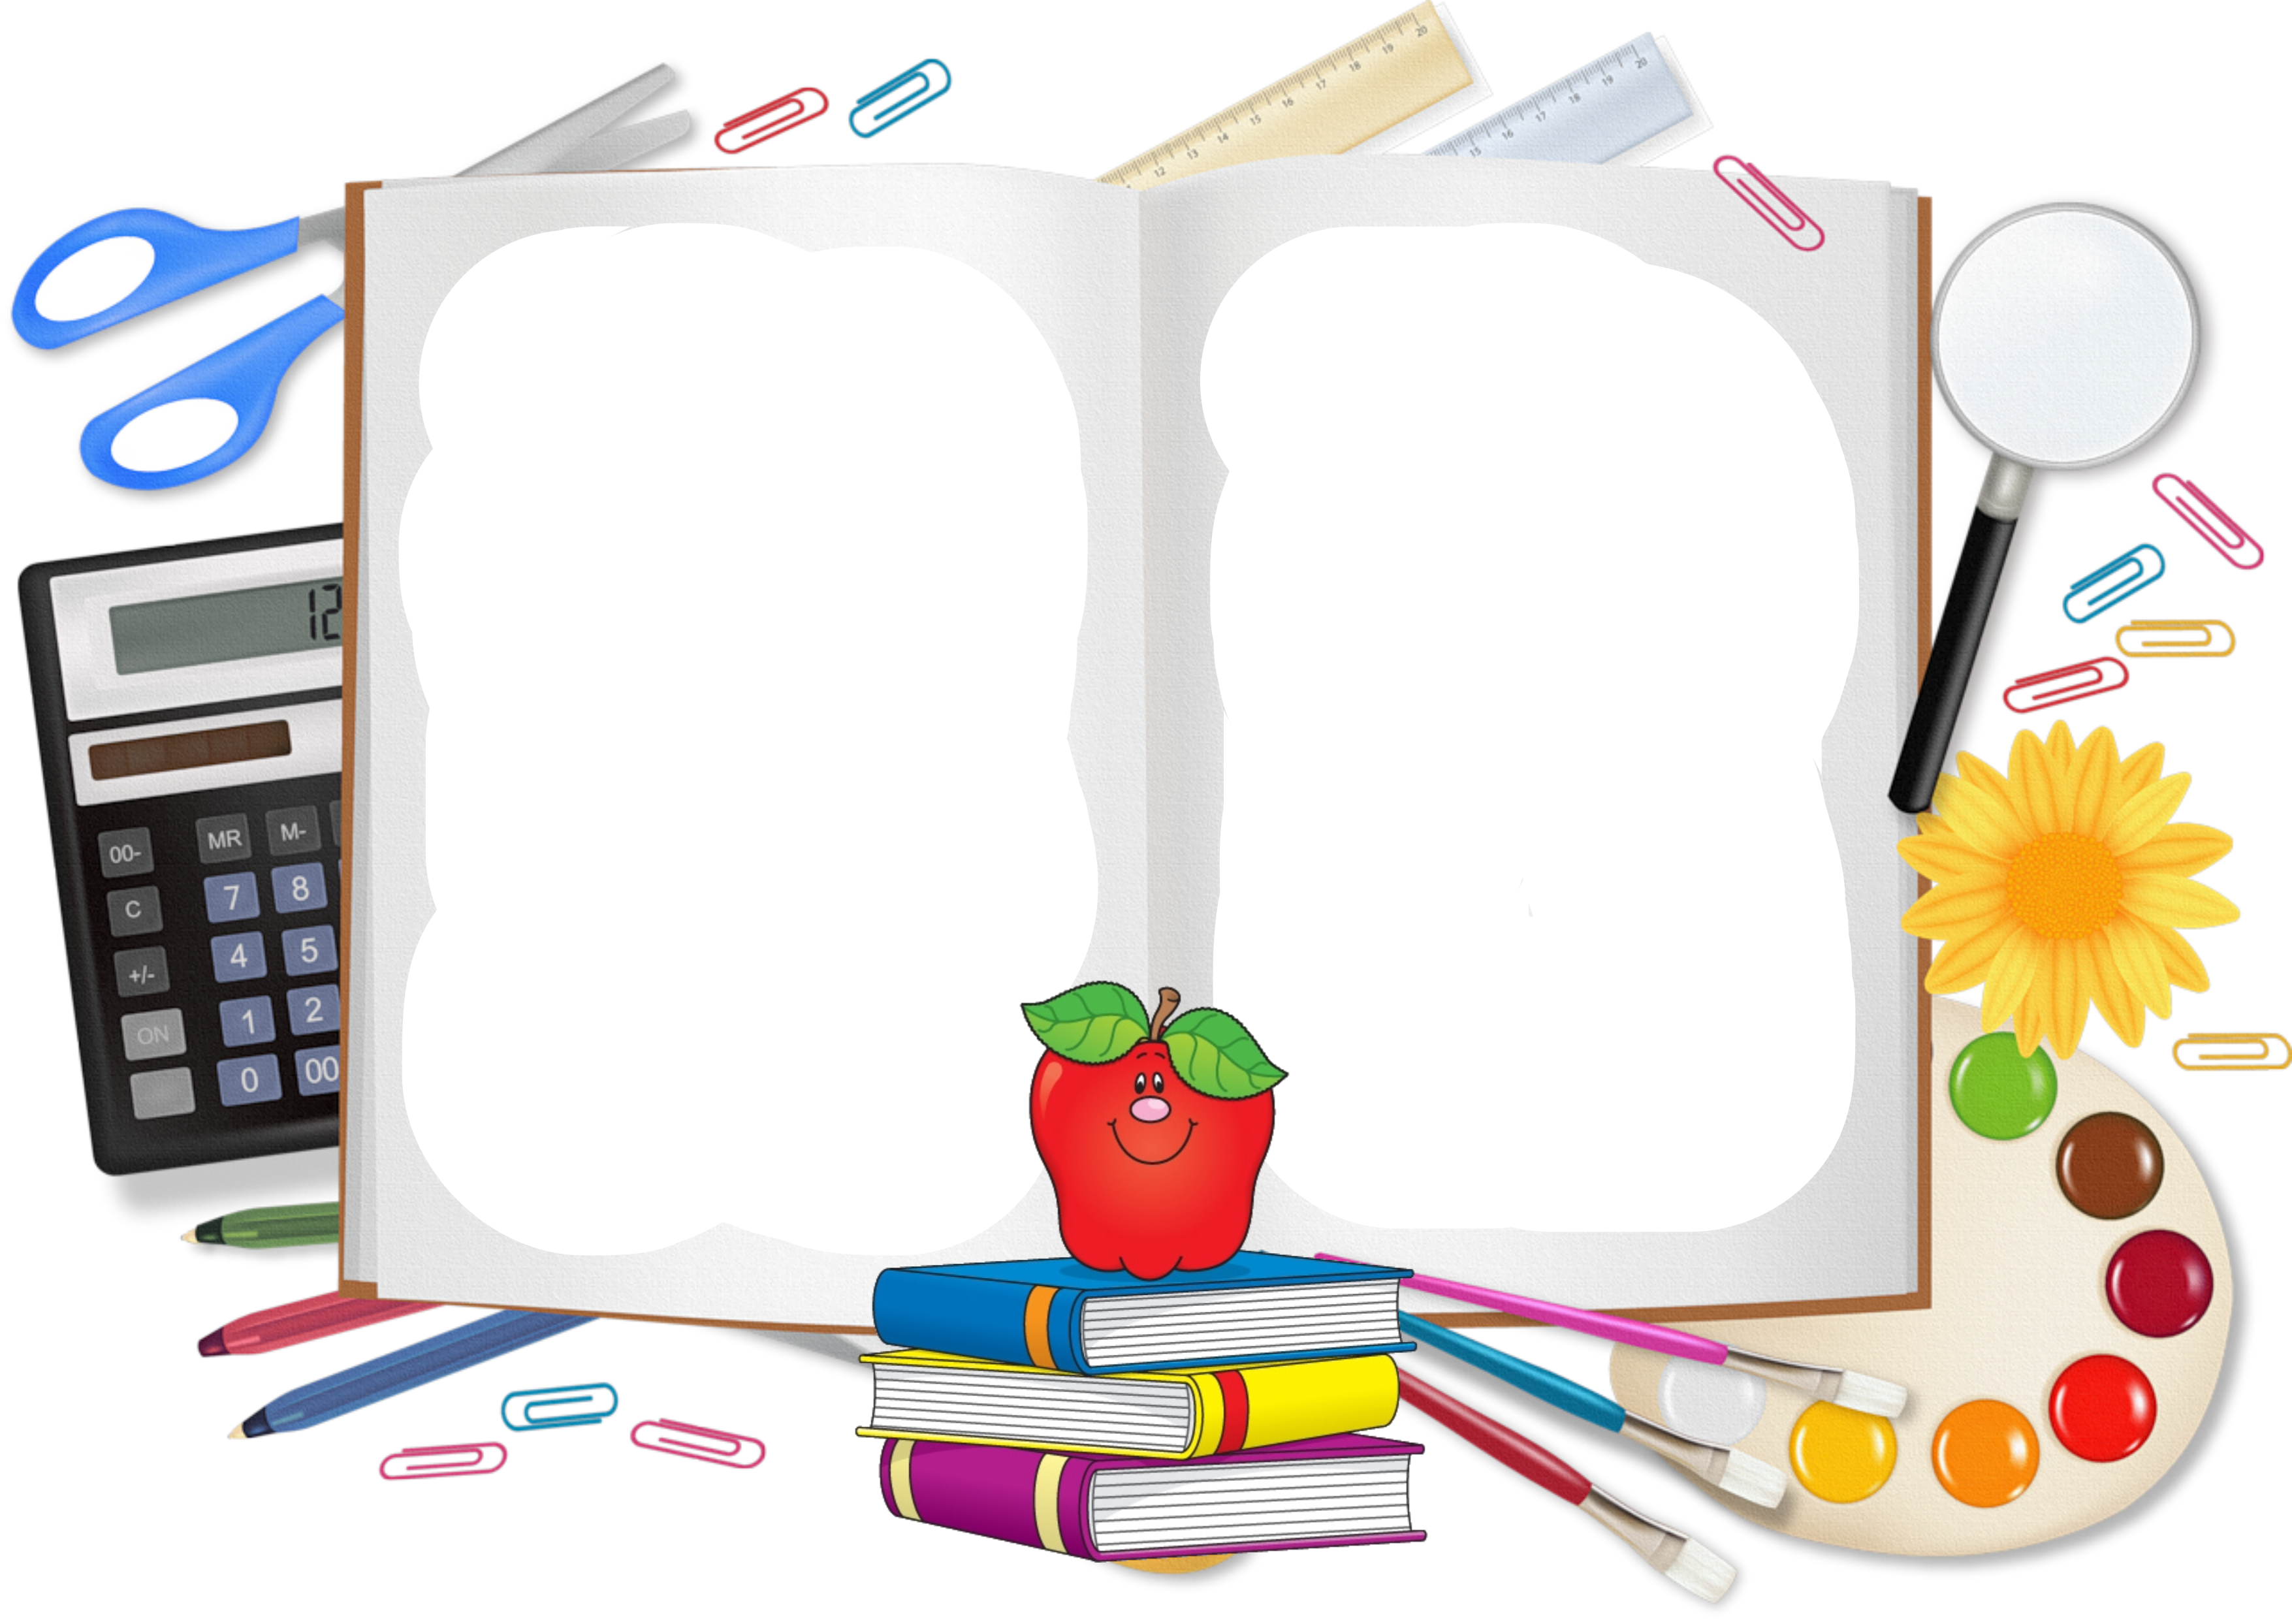 School supplies clipart free graphic freeuse download Student School supplies Clip art - Cartoon book pencil free to pull ... graphic freeuse download